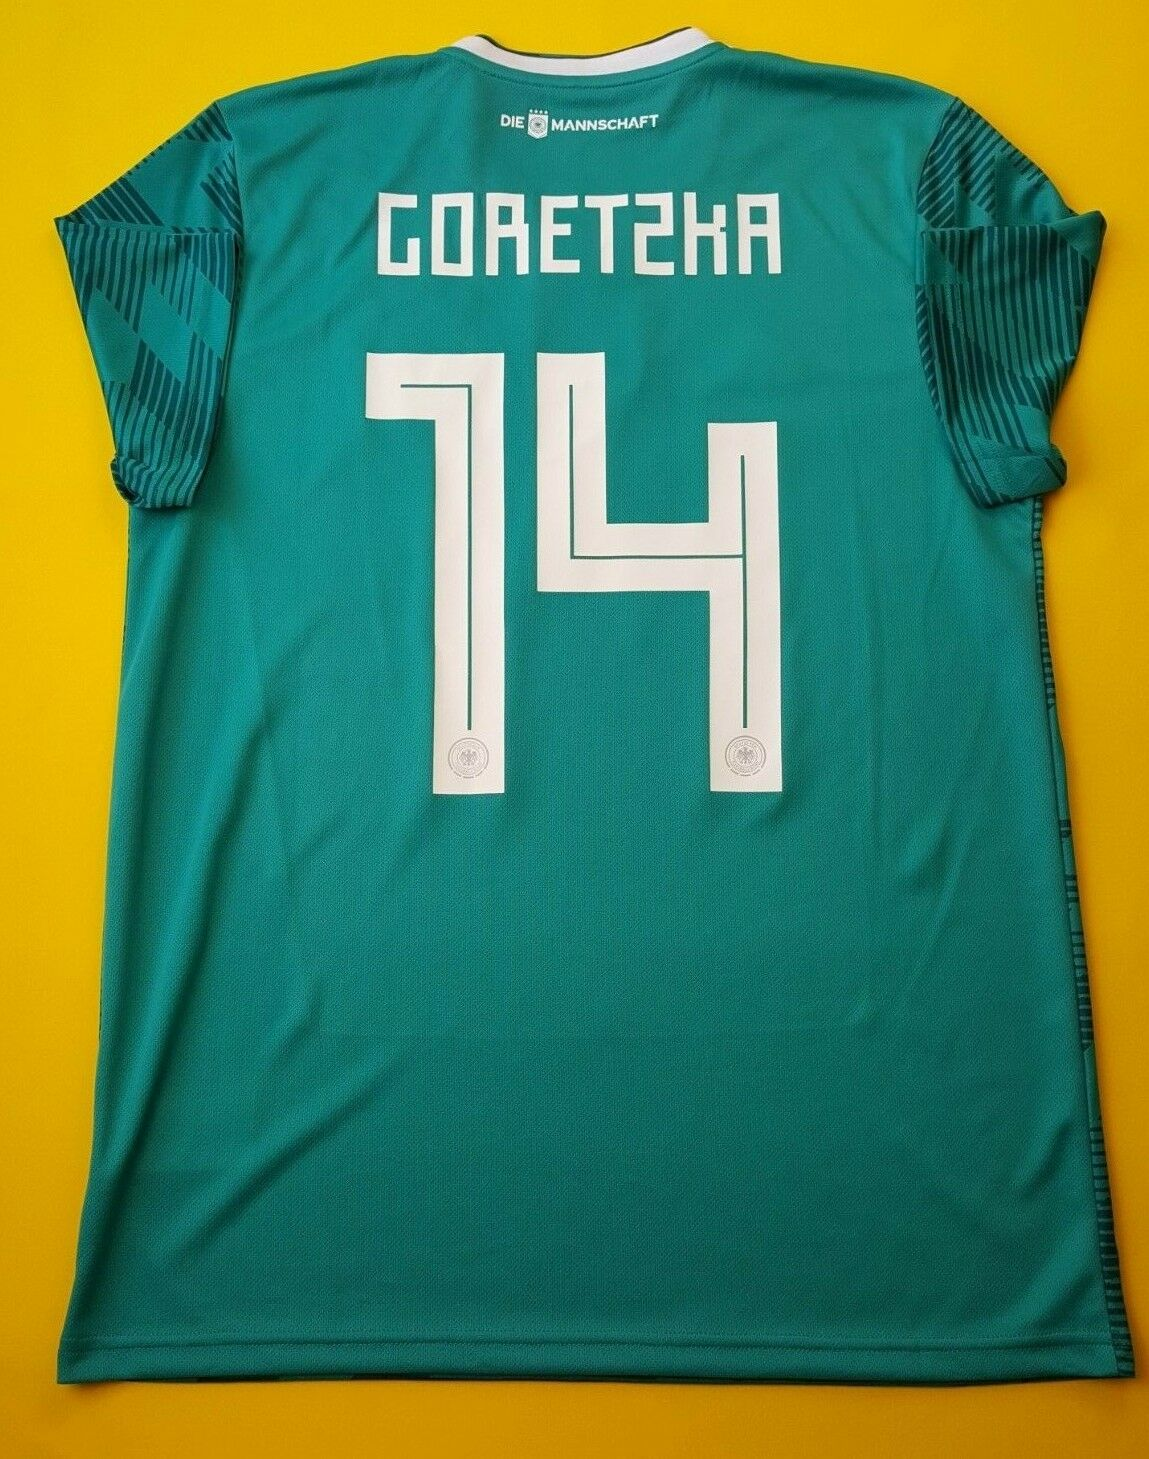 99e8b2ebff7 5+ 5 Goretzka Germany jersey 2018 away shirt BR3144 soccer Adidas ig93  soccer nudkws3322-Soccer-National Teams